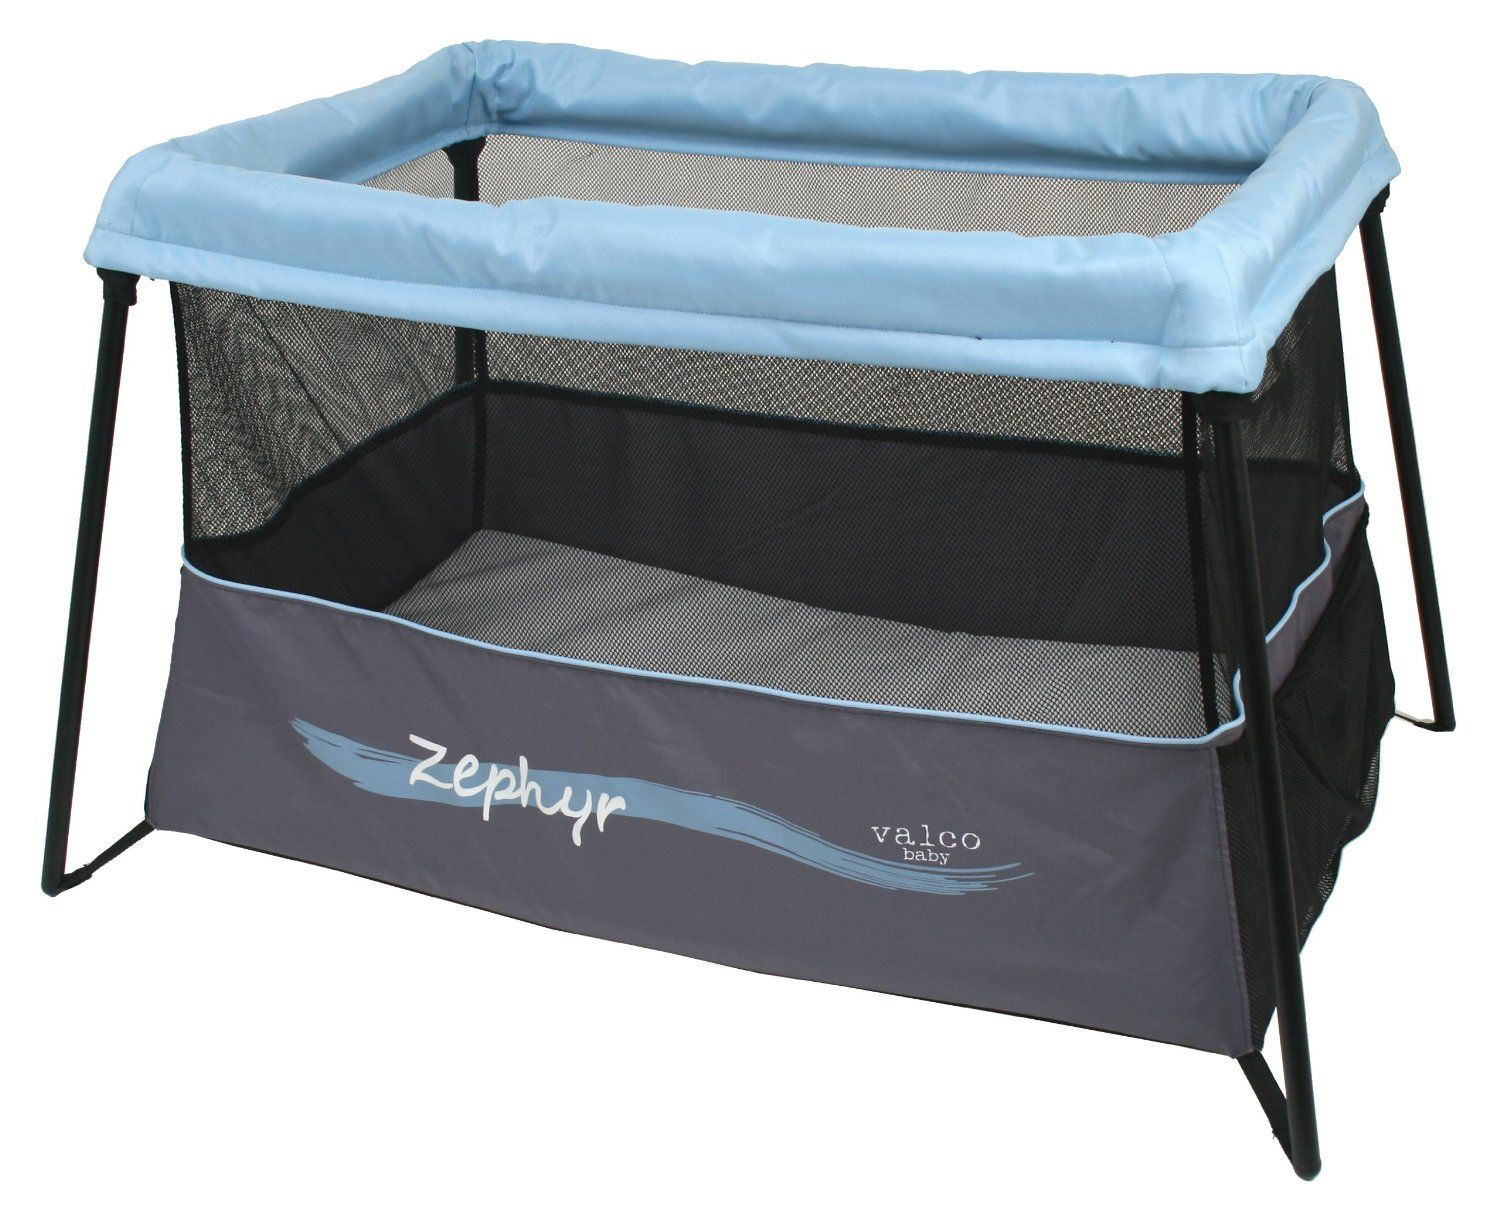 Crib alternatives for babies - Valco Baby Zephyr Travel Crib Extra Lightweight Collapsable Playpen An Alternative To The Highly